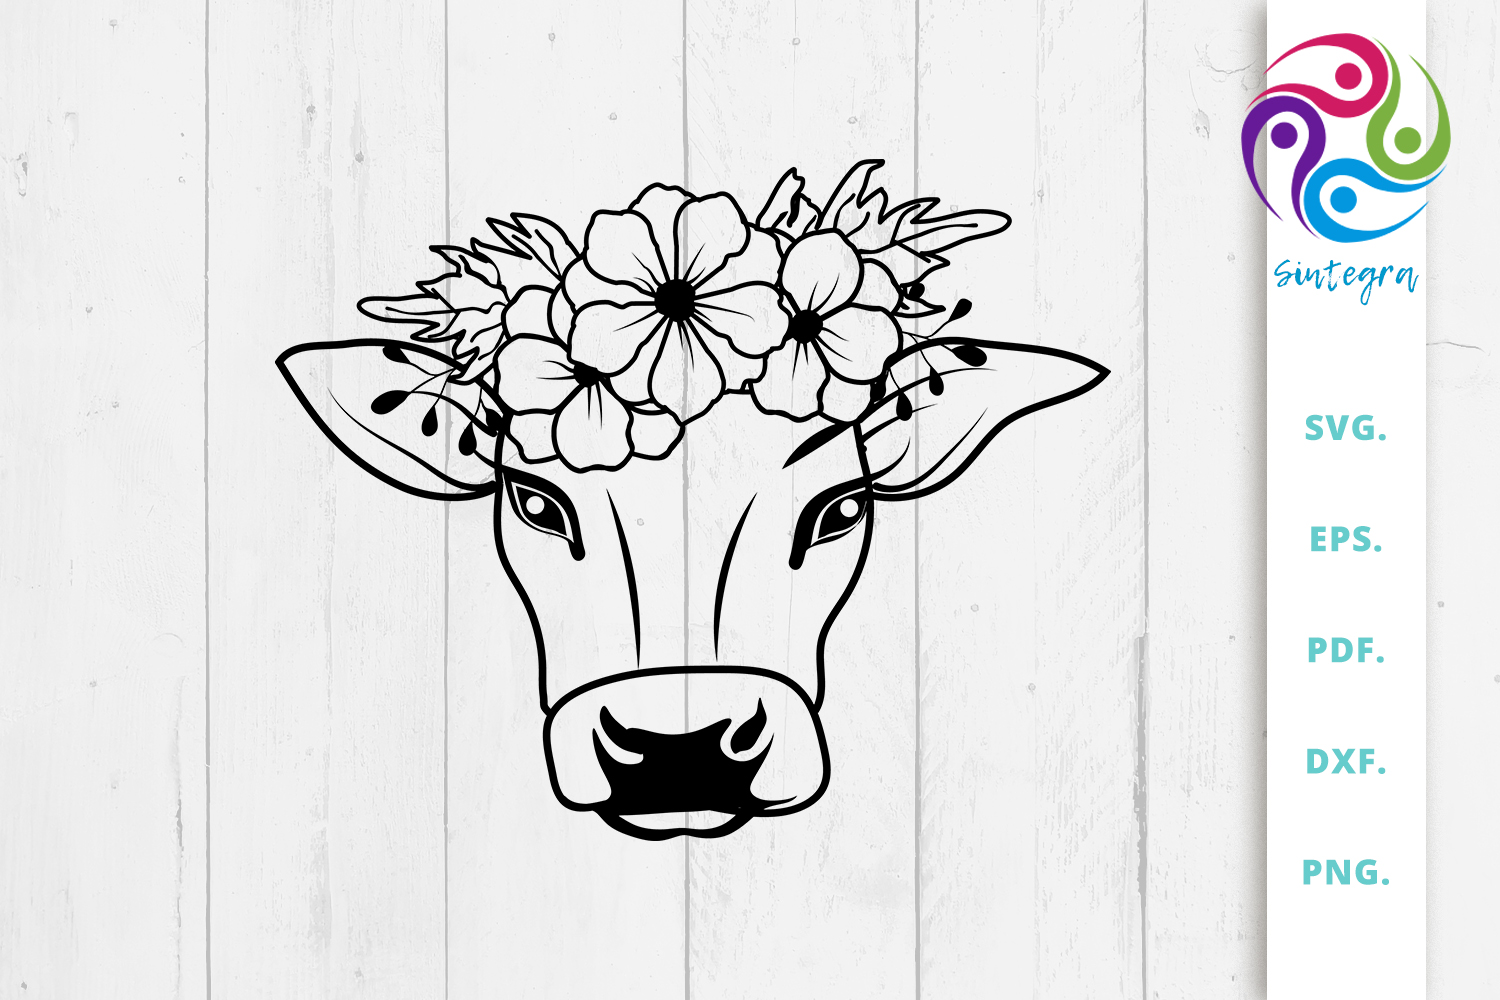 Cow with Flower Crown Svg Files SVG File